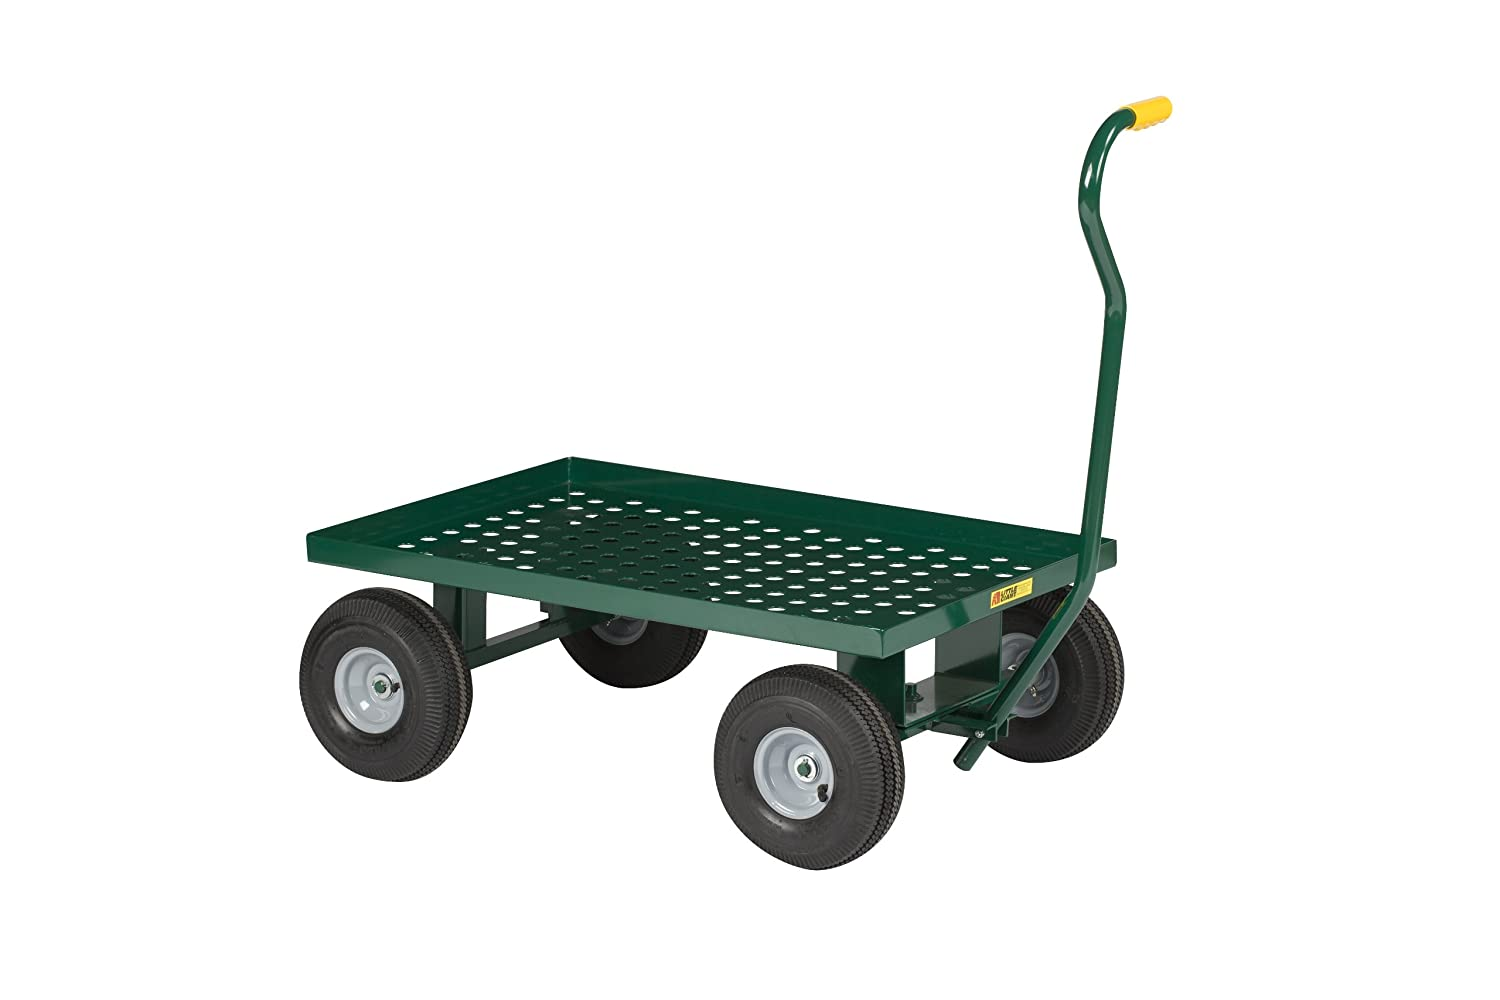 10 x 2-3//4 Solid Rubber Wheel 24 Width x 36 Length Green 1200 lbs Load Capacity Little Giant LWP-2436-10-G Steel Perforated Deck Wagon Truck with 1-1//2 Lip